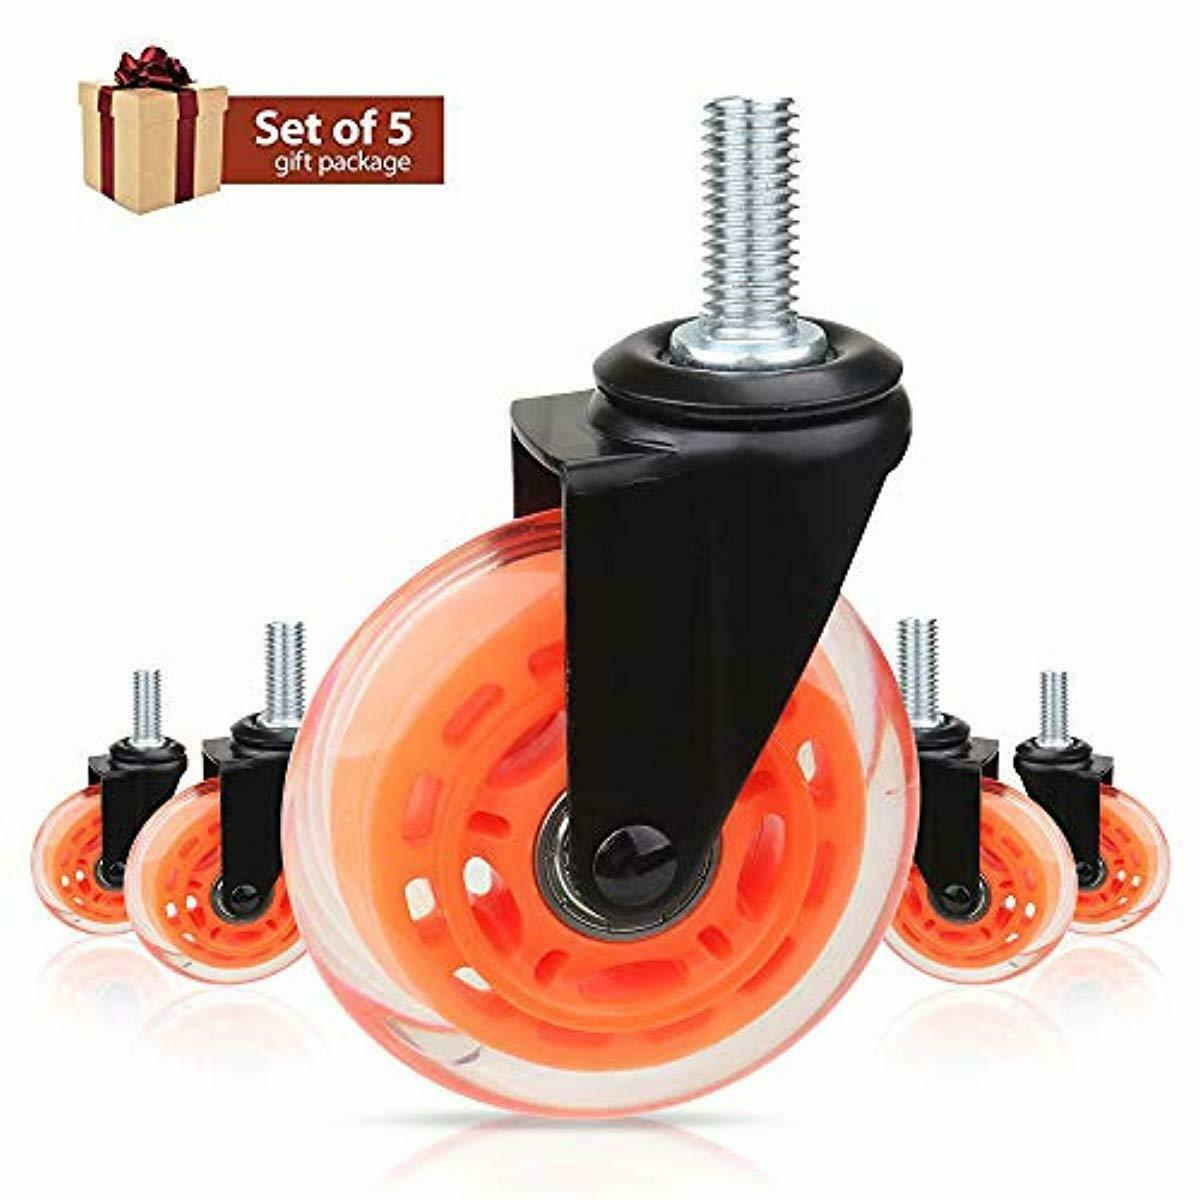 Office Chair Wheels By 8T8 For Smart Home Offices, M8 5/16